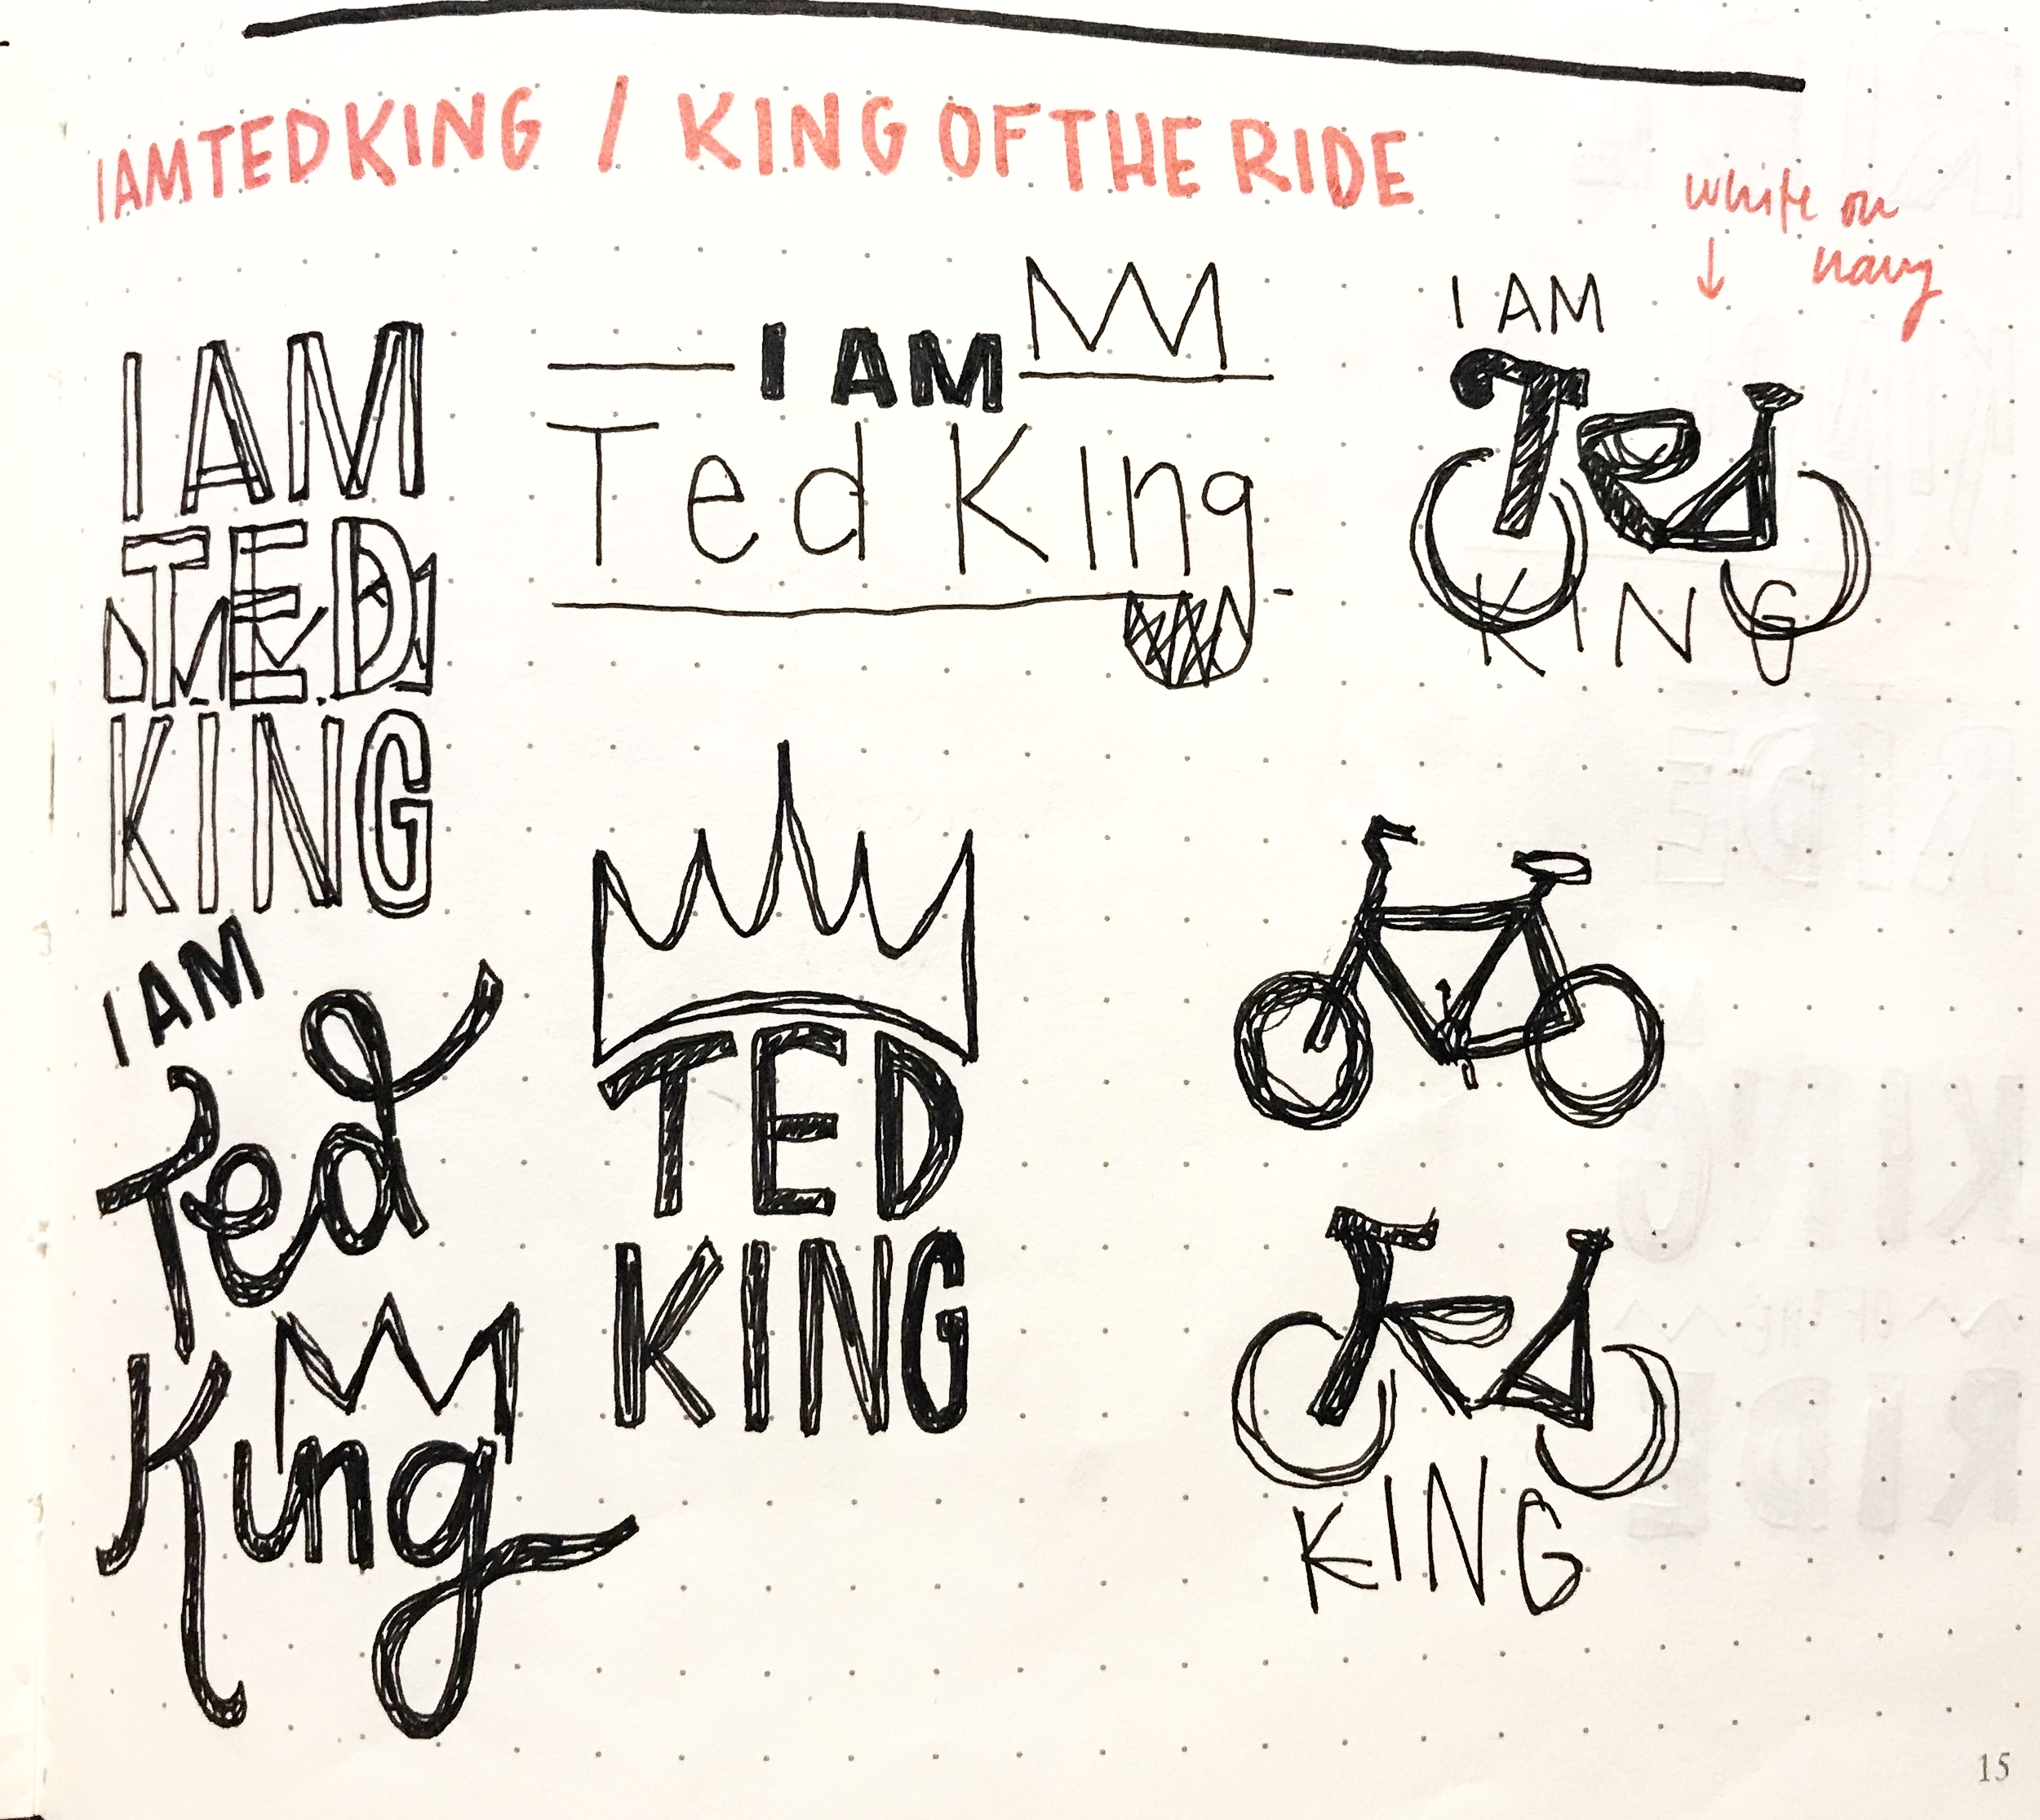 Here are some of my  preliminary sketches.  I was inspired to create logos that were dynamic and fun, while still being refined.